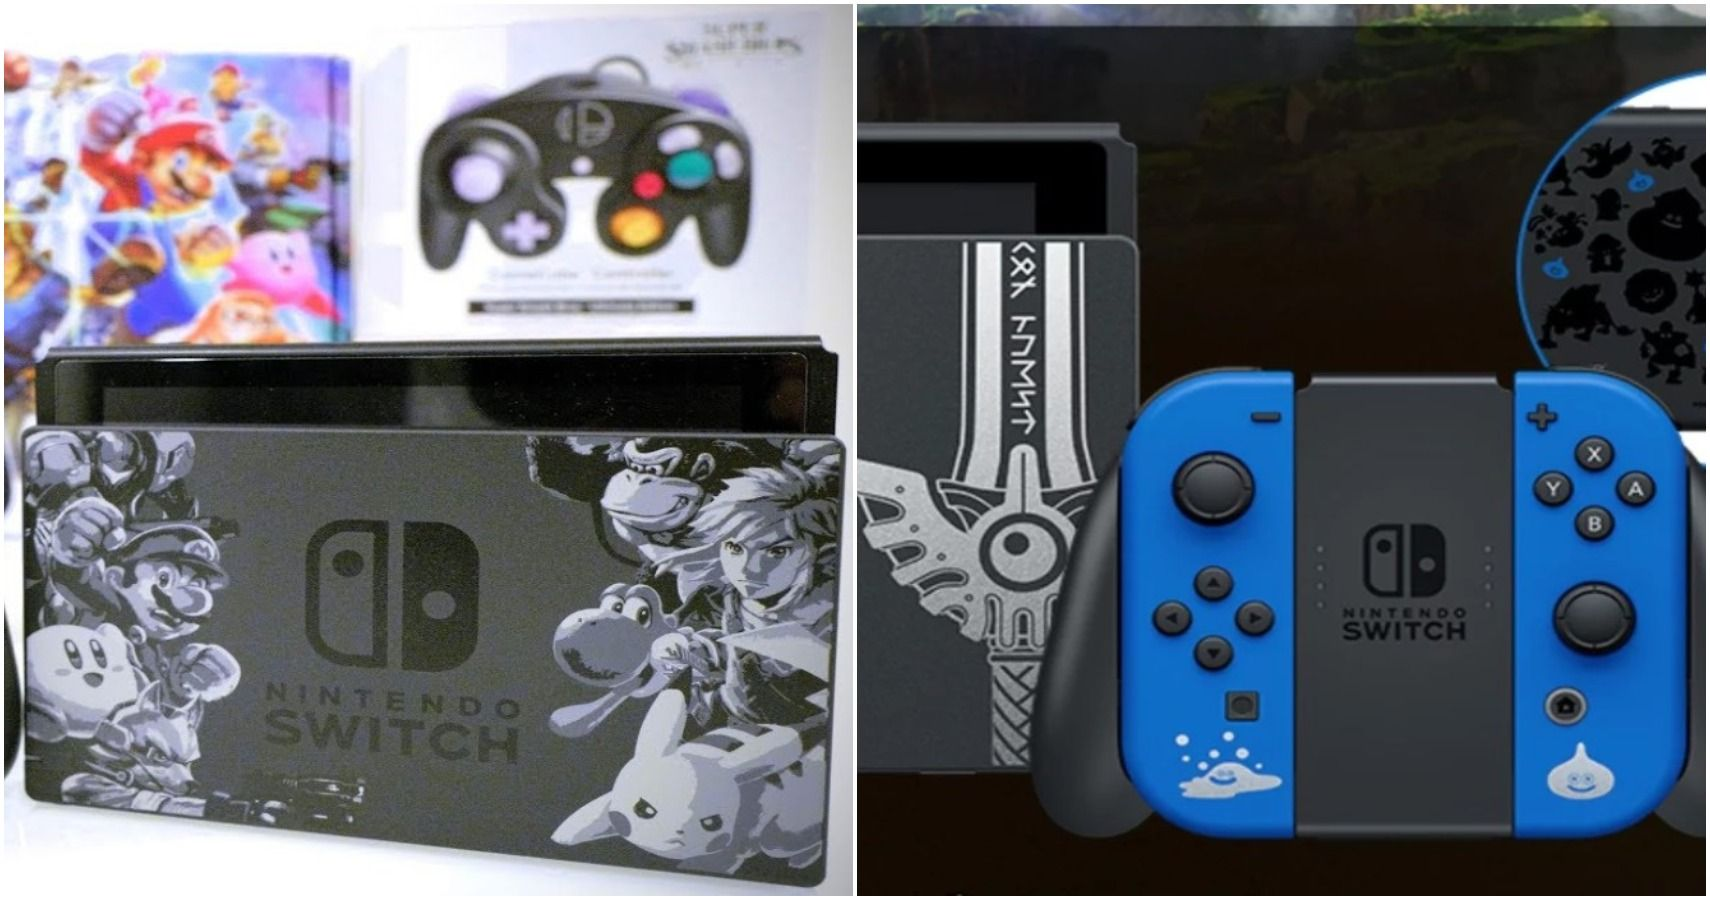 10 Best Limited Edition Nintendo Switch Models Ranked